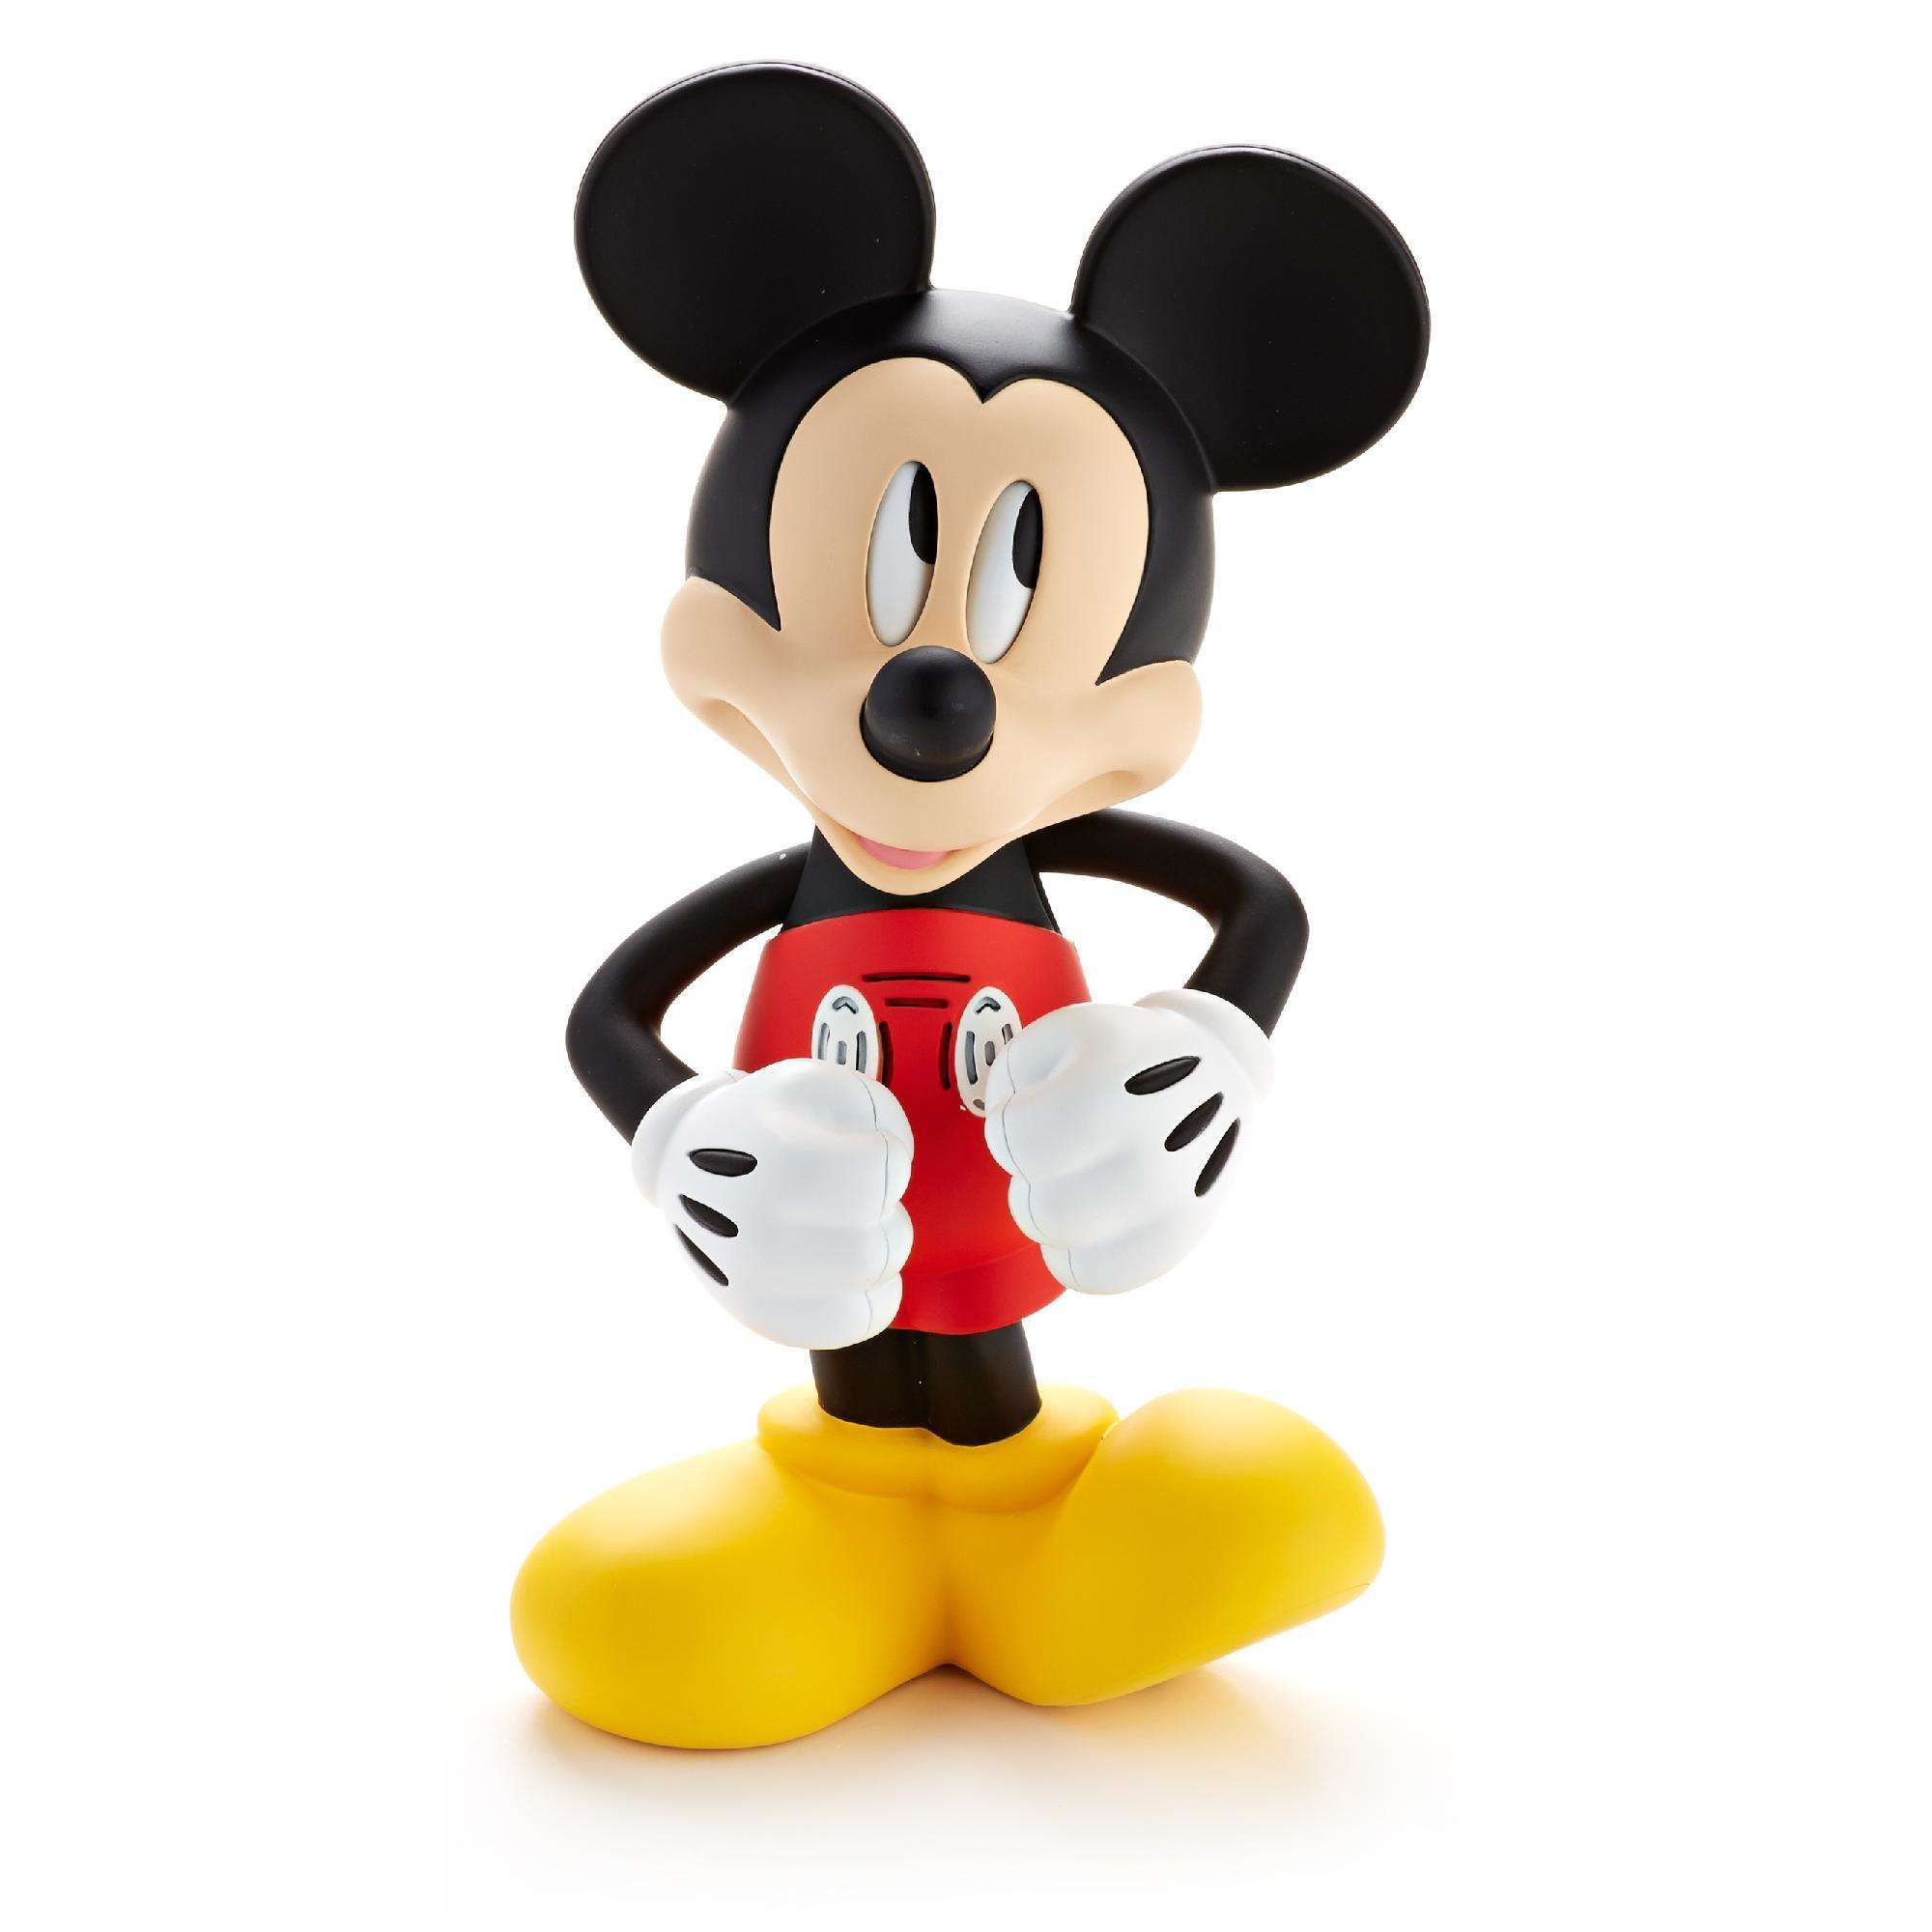 Disney Mickey Mouse Clubhouse Hot Dog Rockin' Mickey by Mattel